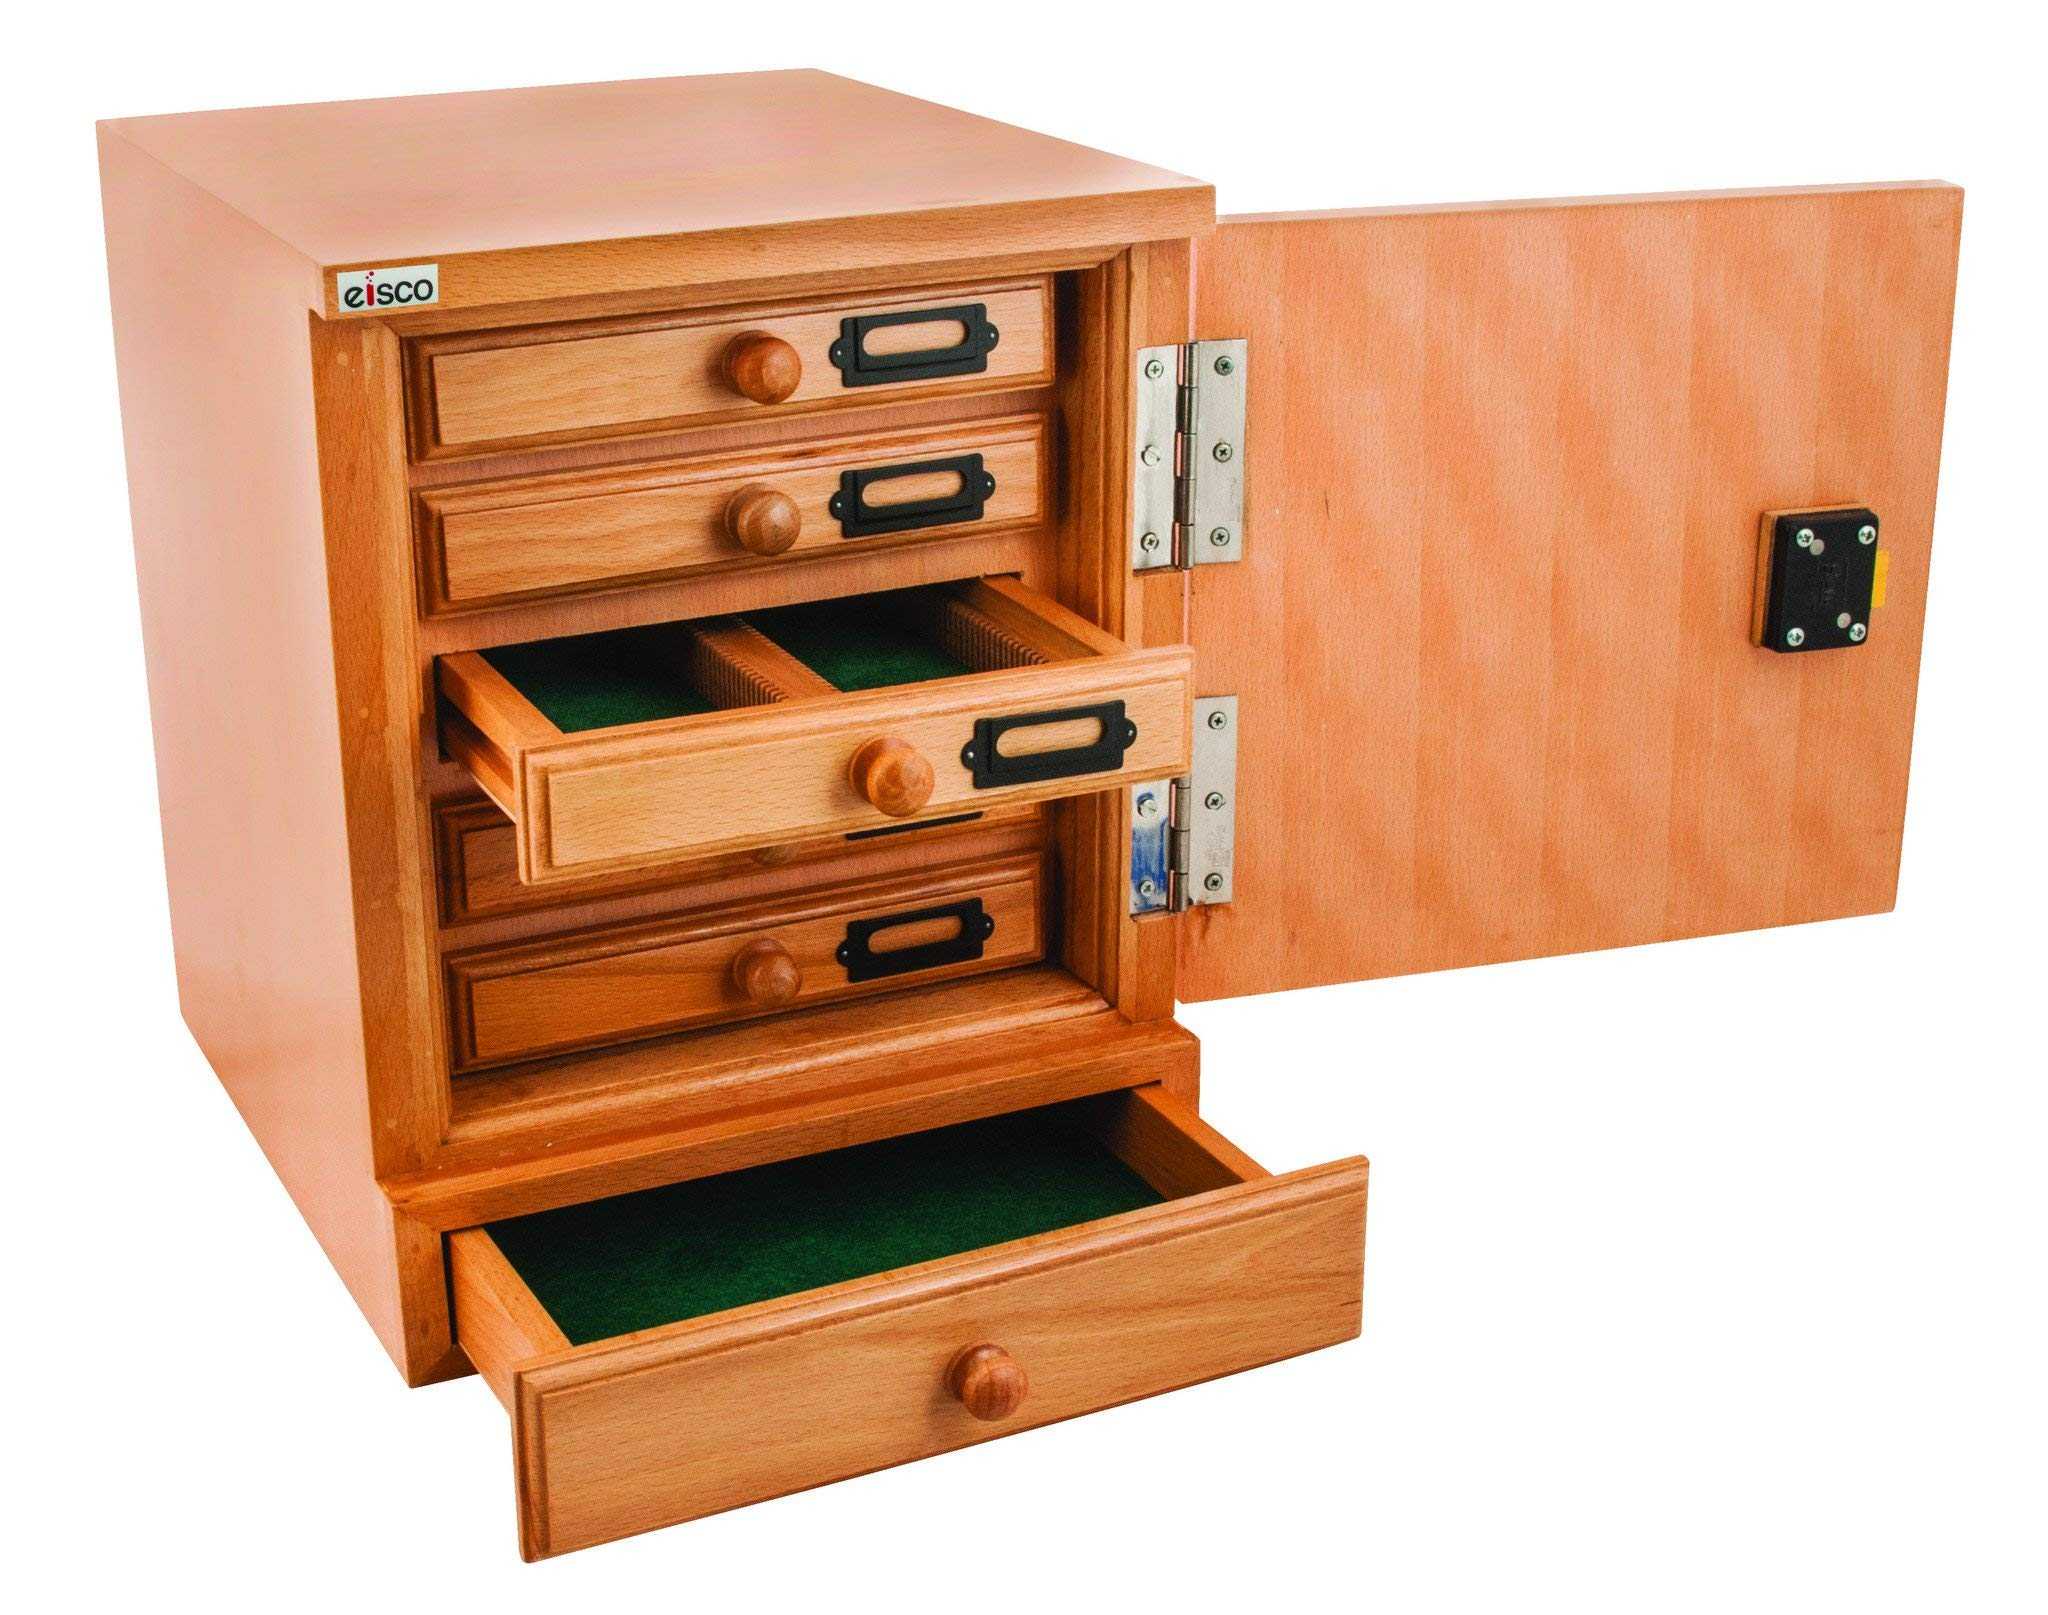 Eisco BI0123A Wooden Slide Cabinet, 5 Drawers, 500 Slide Capacity Total by Eisco